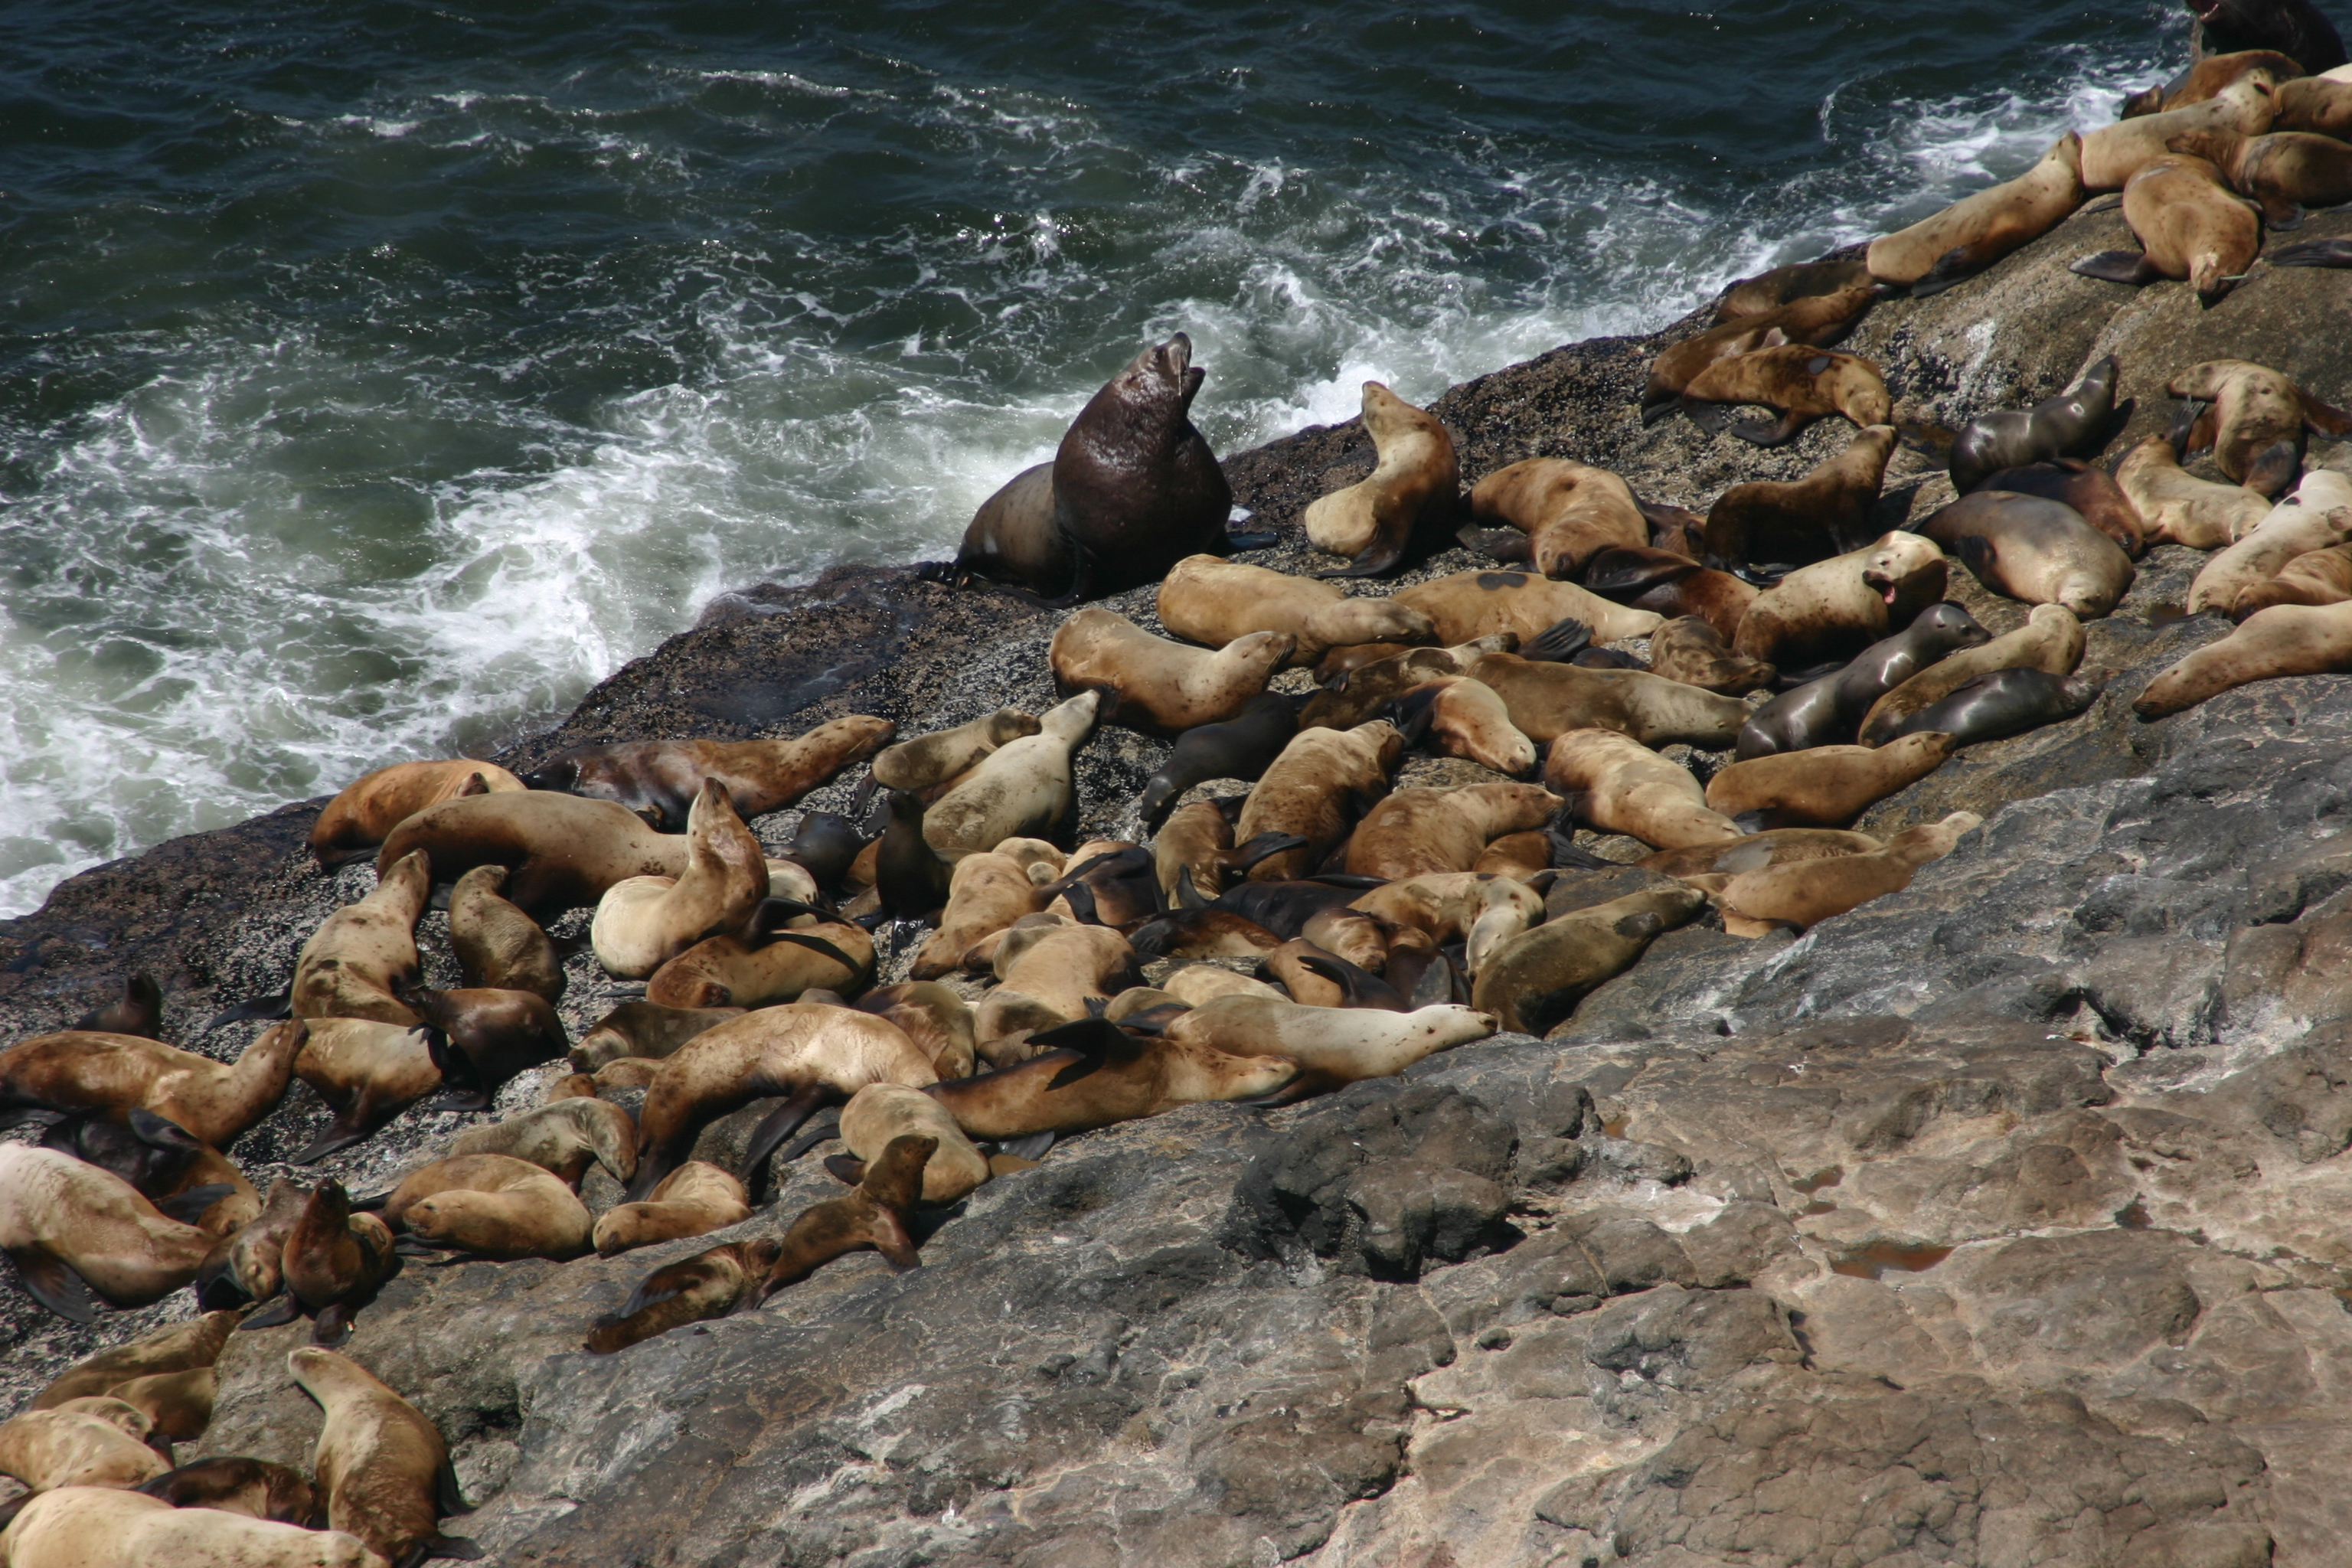 File:Sea Lion Caves Lookout.JPG - Wikimedia Commons